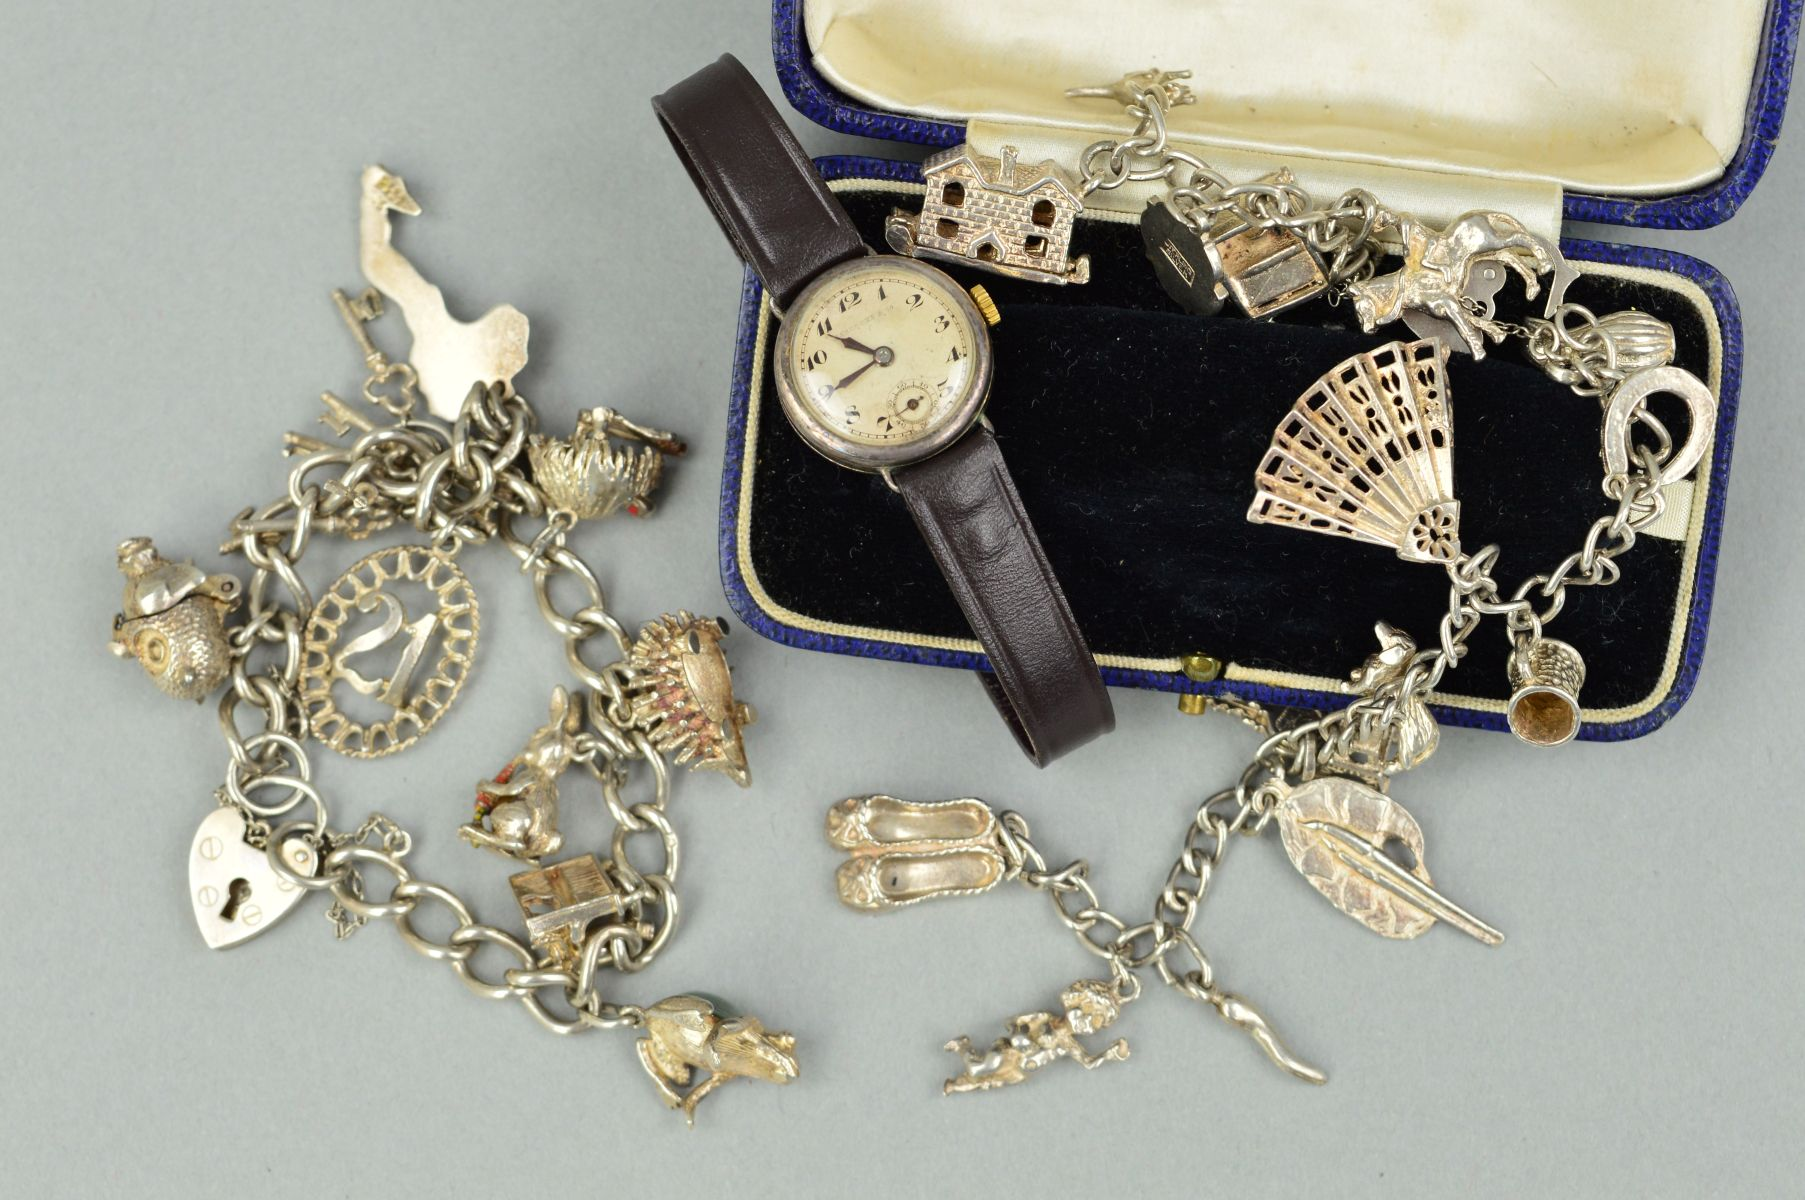 Lot 22 - TWO CHARM BRACELETS AND A WATCH WITH ANTIQUE CASE, the charm bracelets on curb link chains